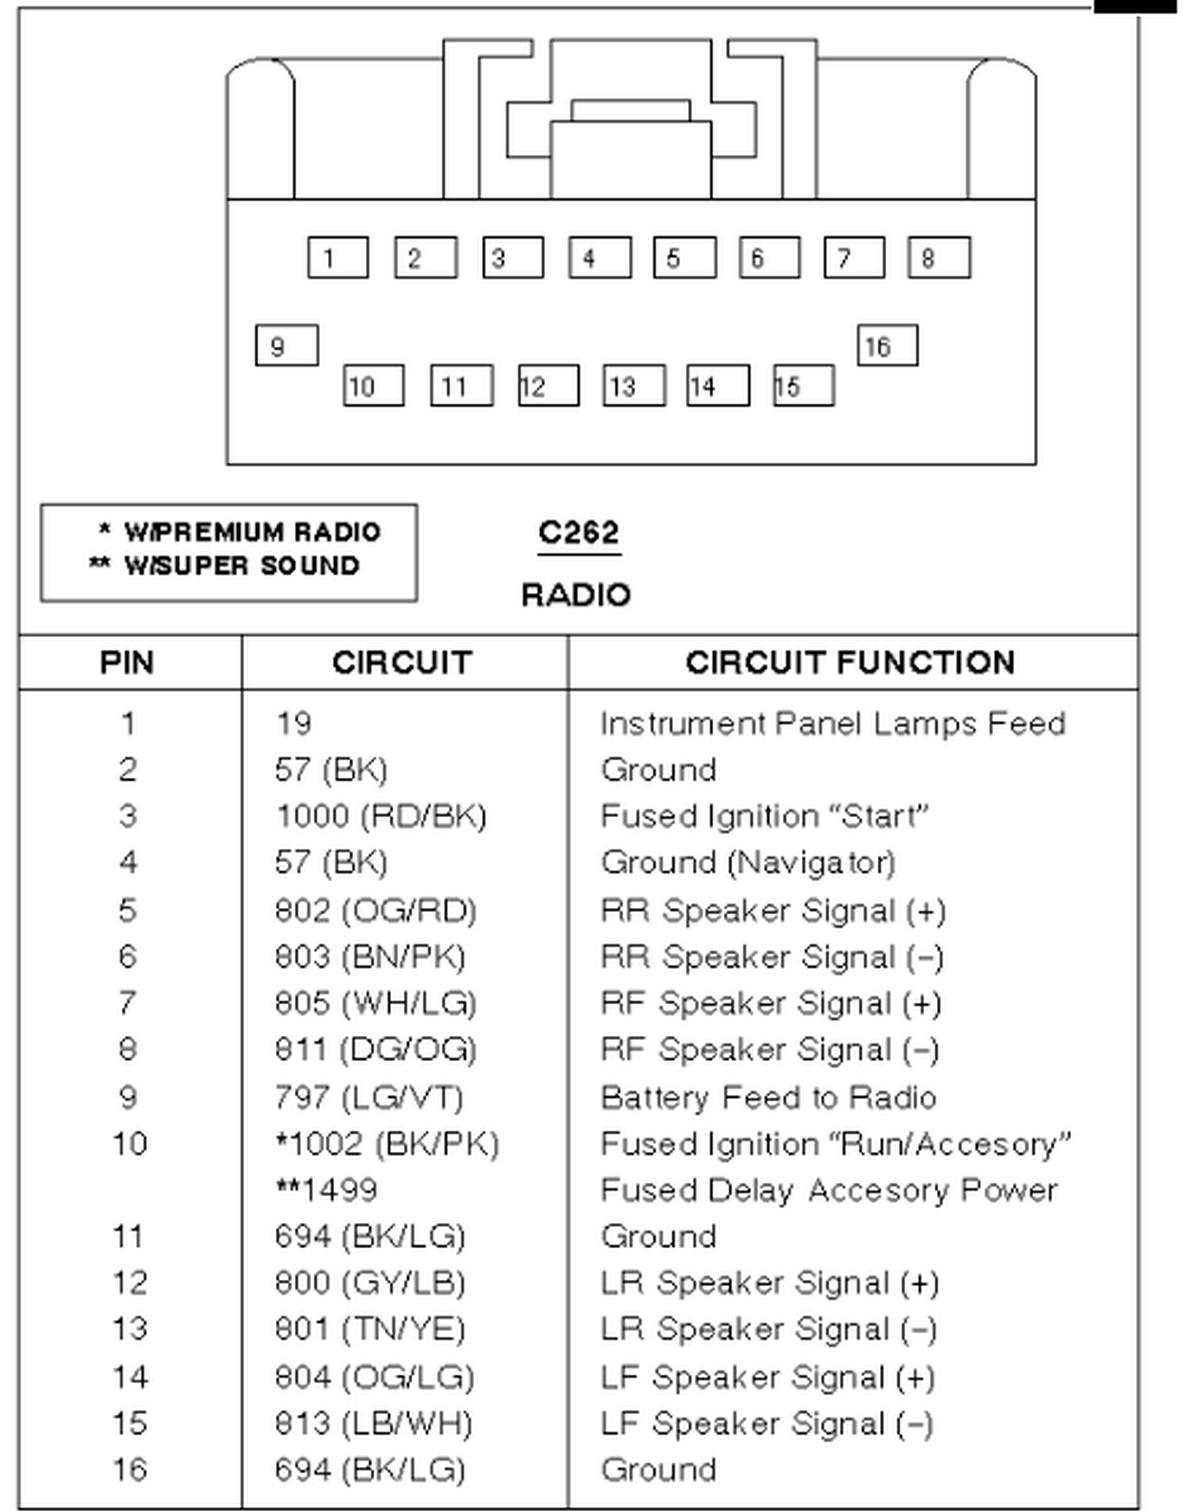 Radio Speaker Wiring Diagram Ford Car Stereo Audio Autoradio Connector Wire Installation Schematic Schema Esquema De Conexiones Stecker Konektor Connecteur Cable